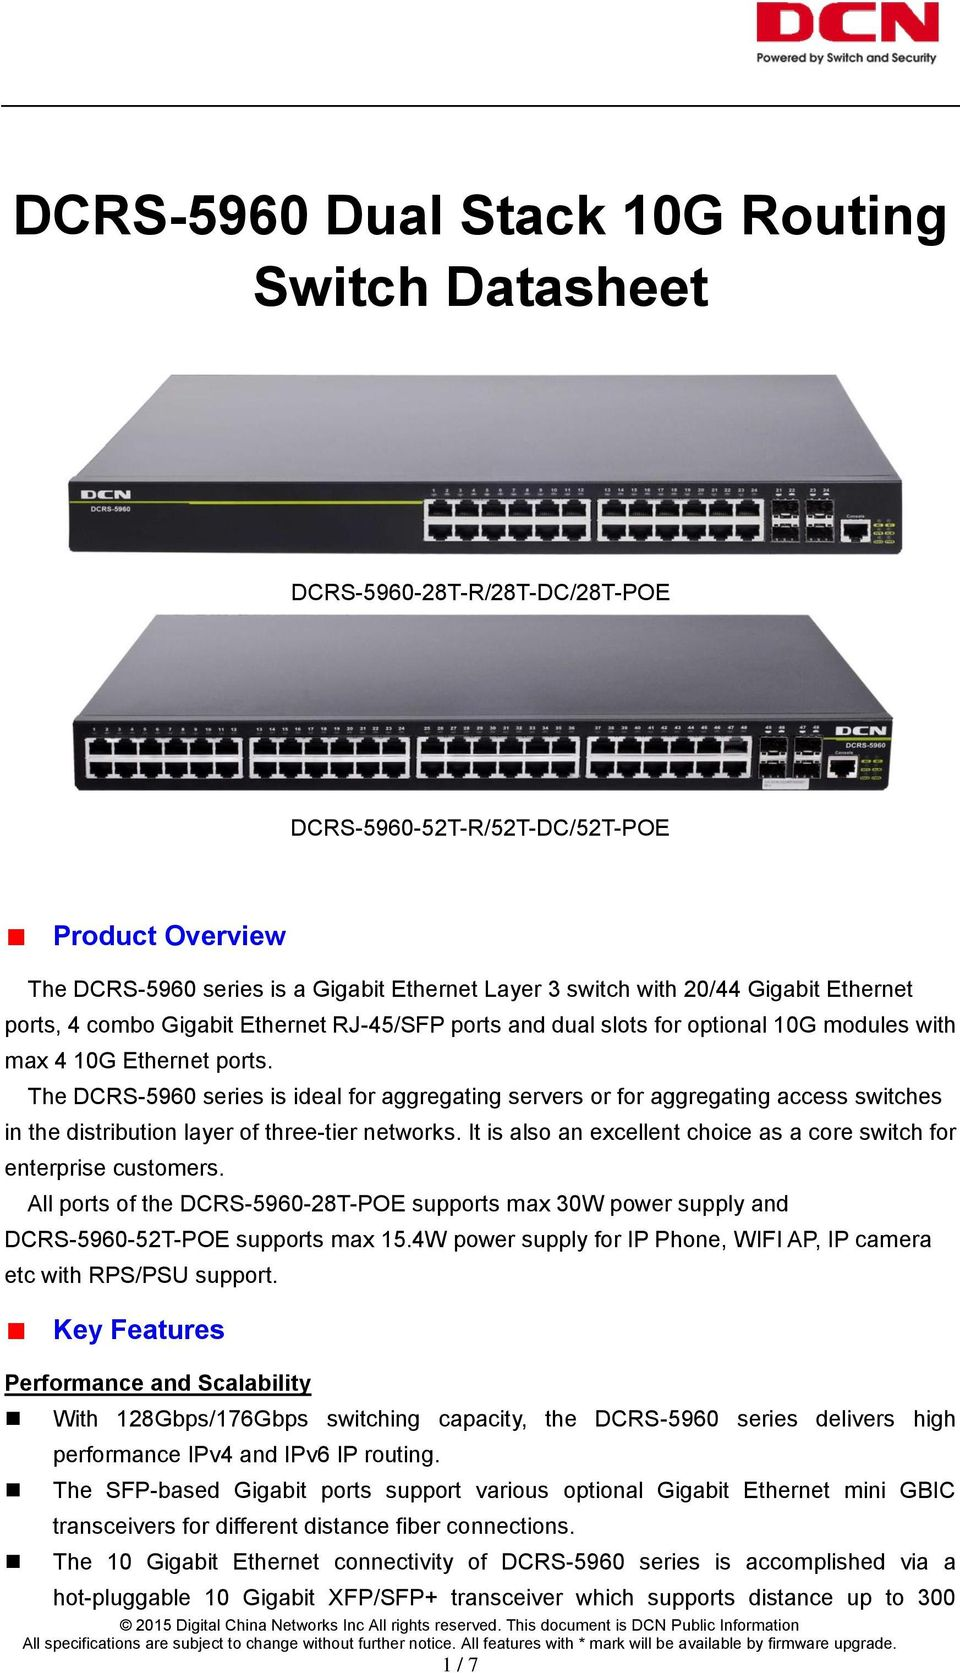 The DCRS-5960 series is ideal for aggregating servers or for aggregating access switches in the distribution layer of three-tier networks.